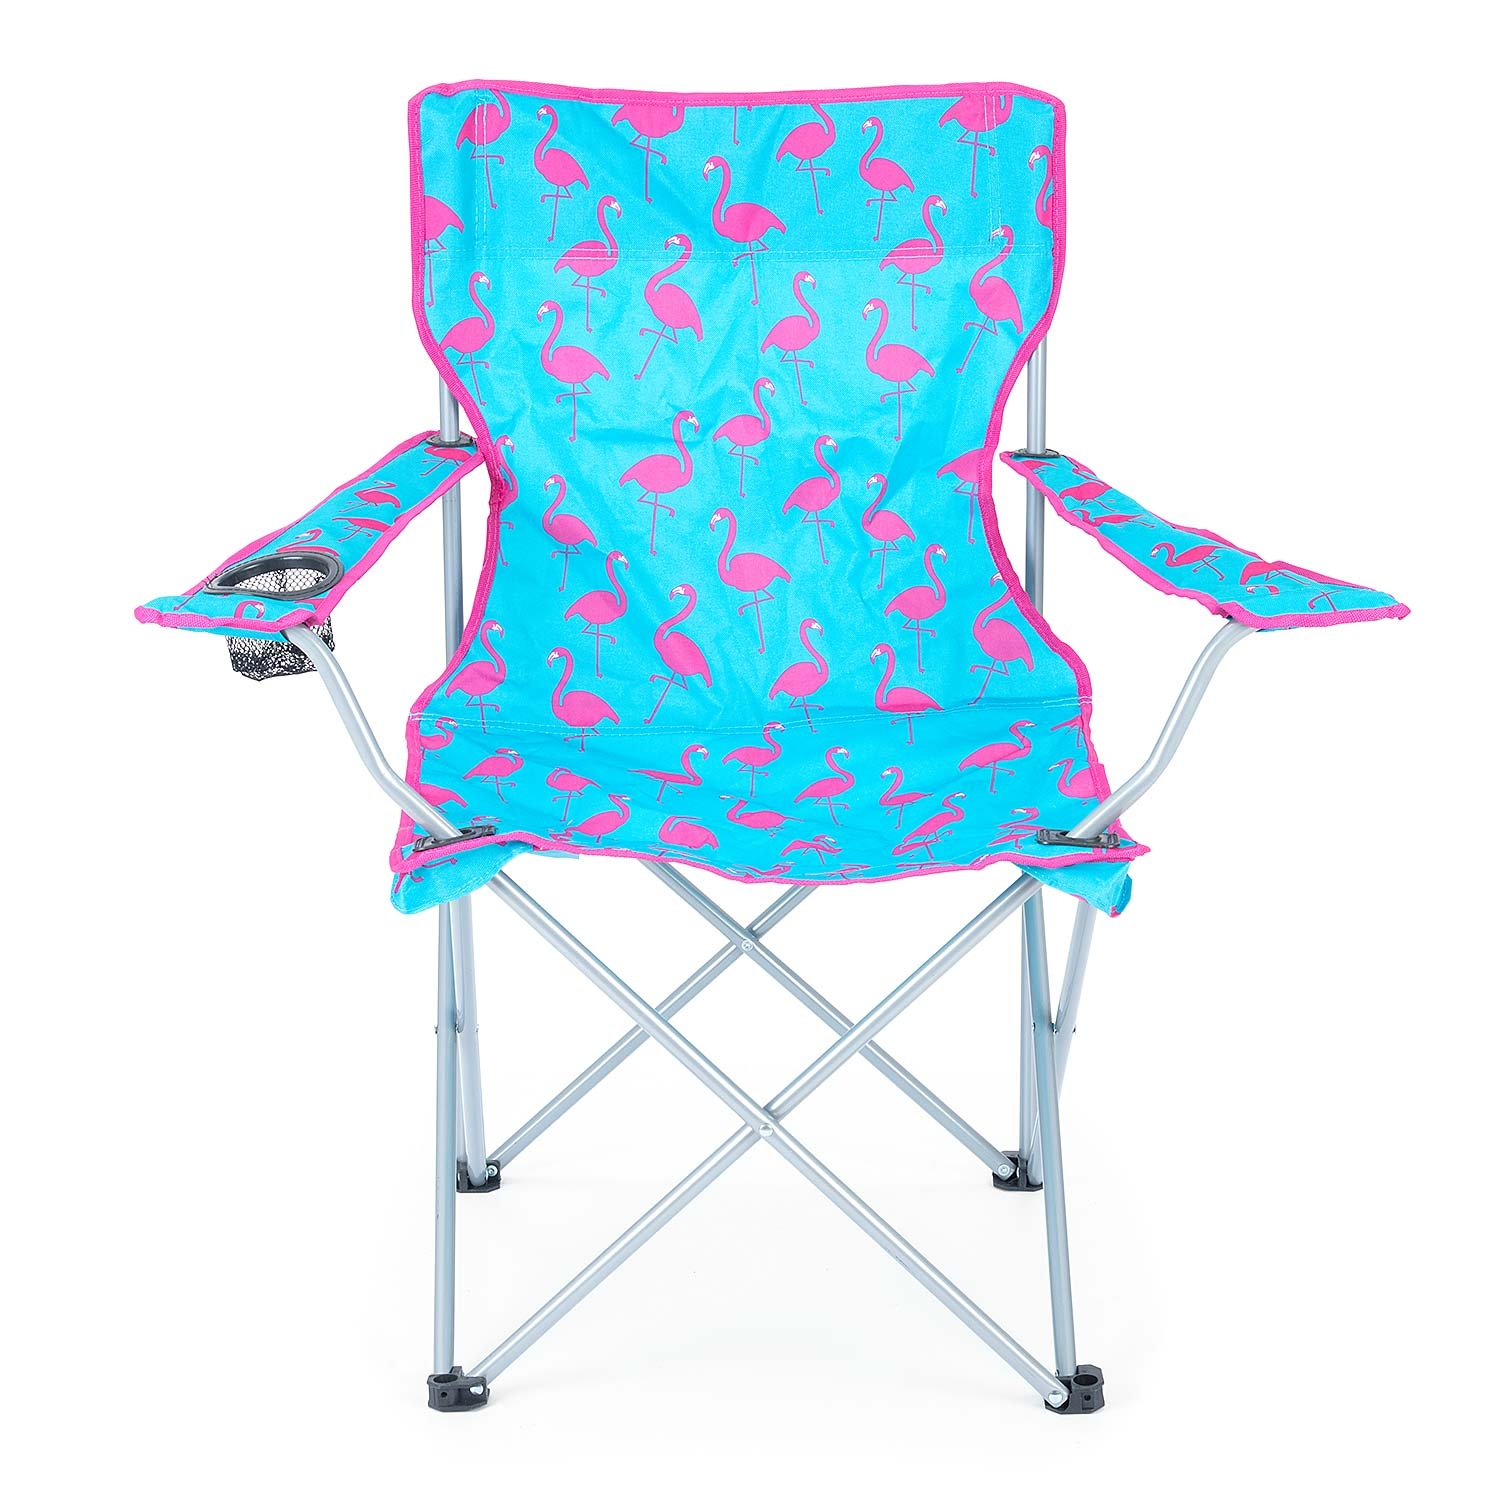 Folding-Camping-Chair-Lightweight-Beach-Festival-Outdoor-Travel-Seat-Flamingo thumbnail 5